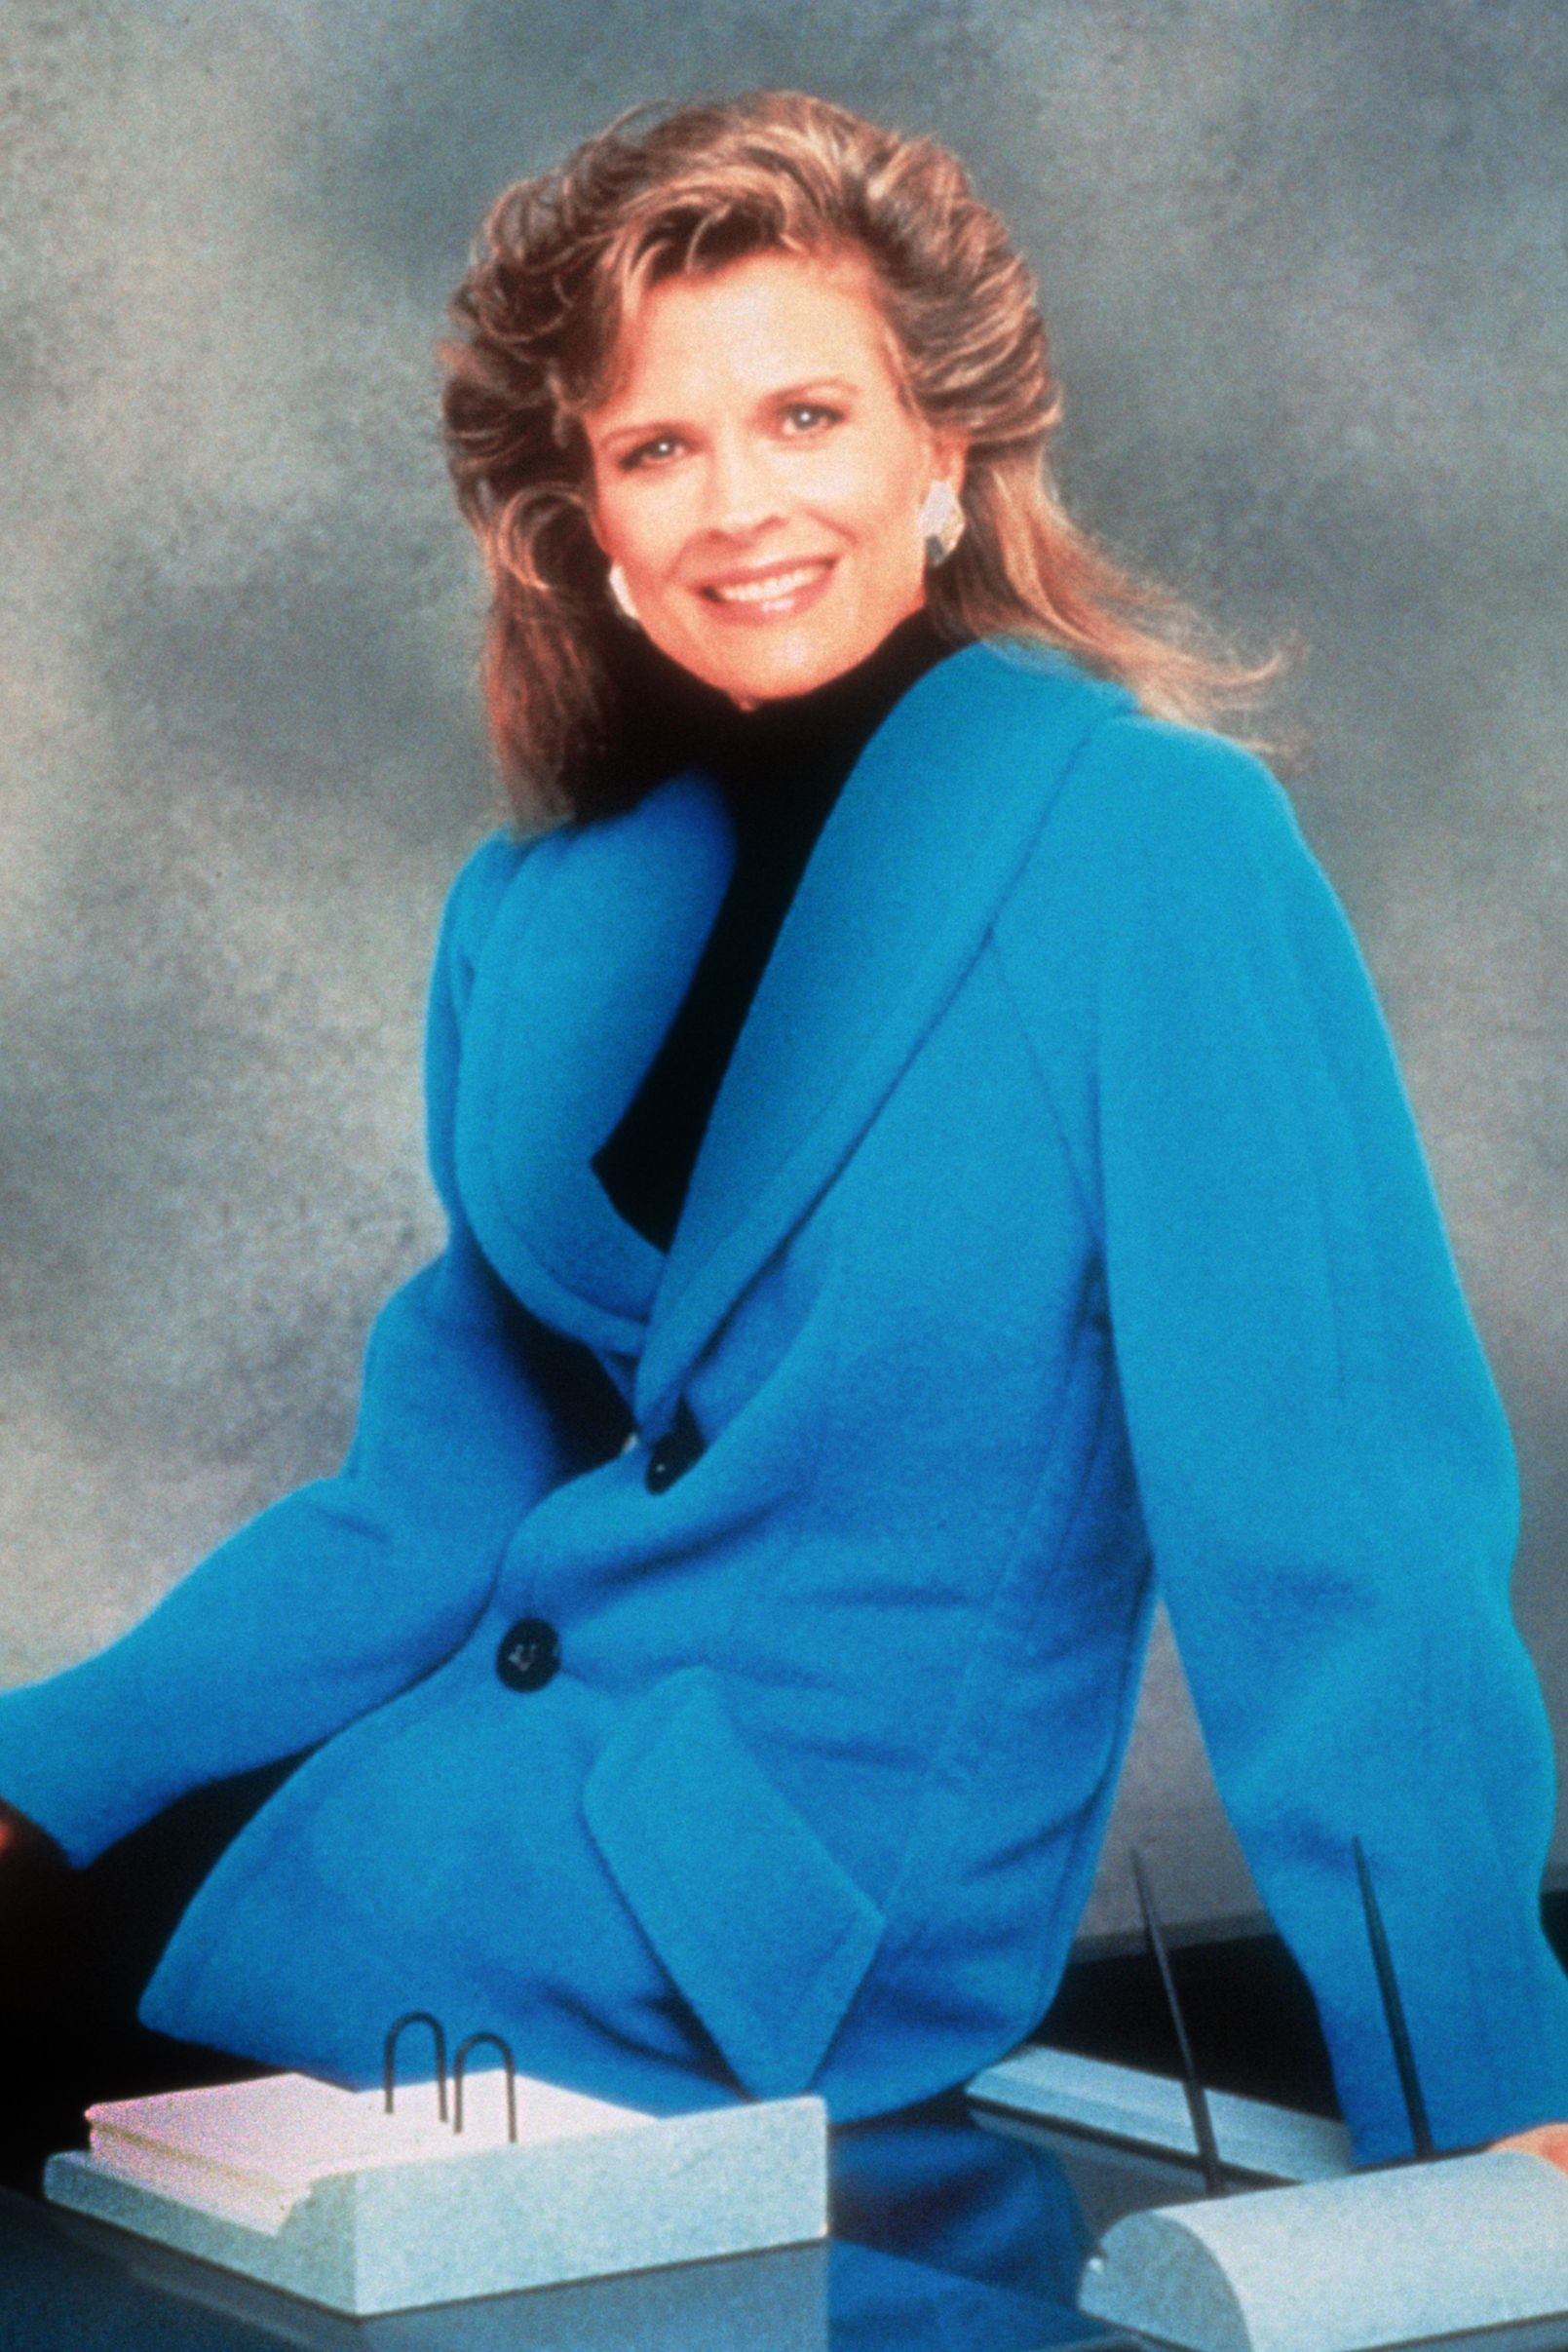 Candice Bergen Seated On A Desk With A Blue Jacket